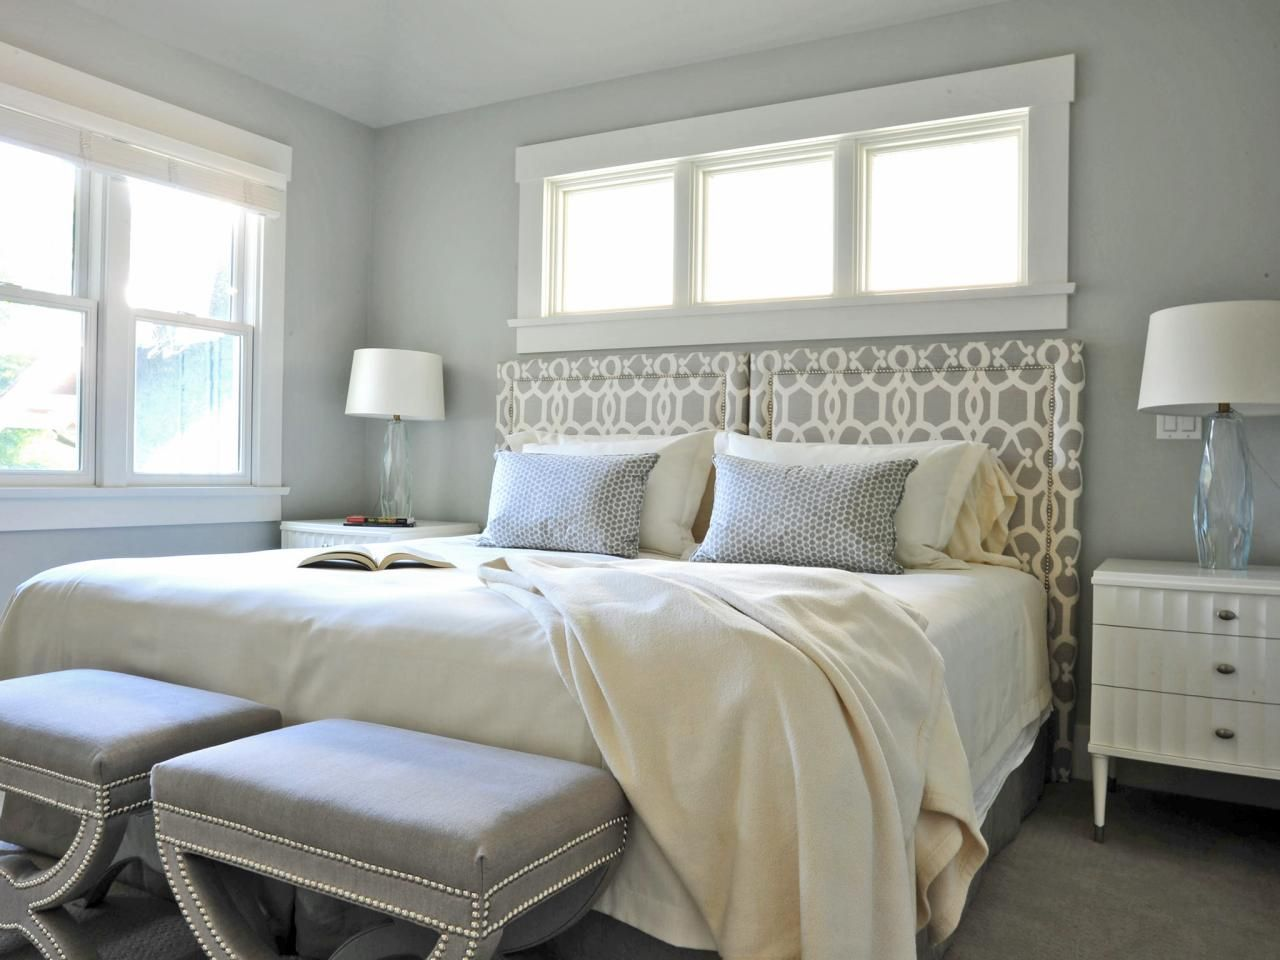 beautiful bedrooms: 15 shades of gray | empty, gray bedroom and